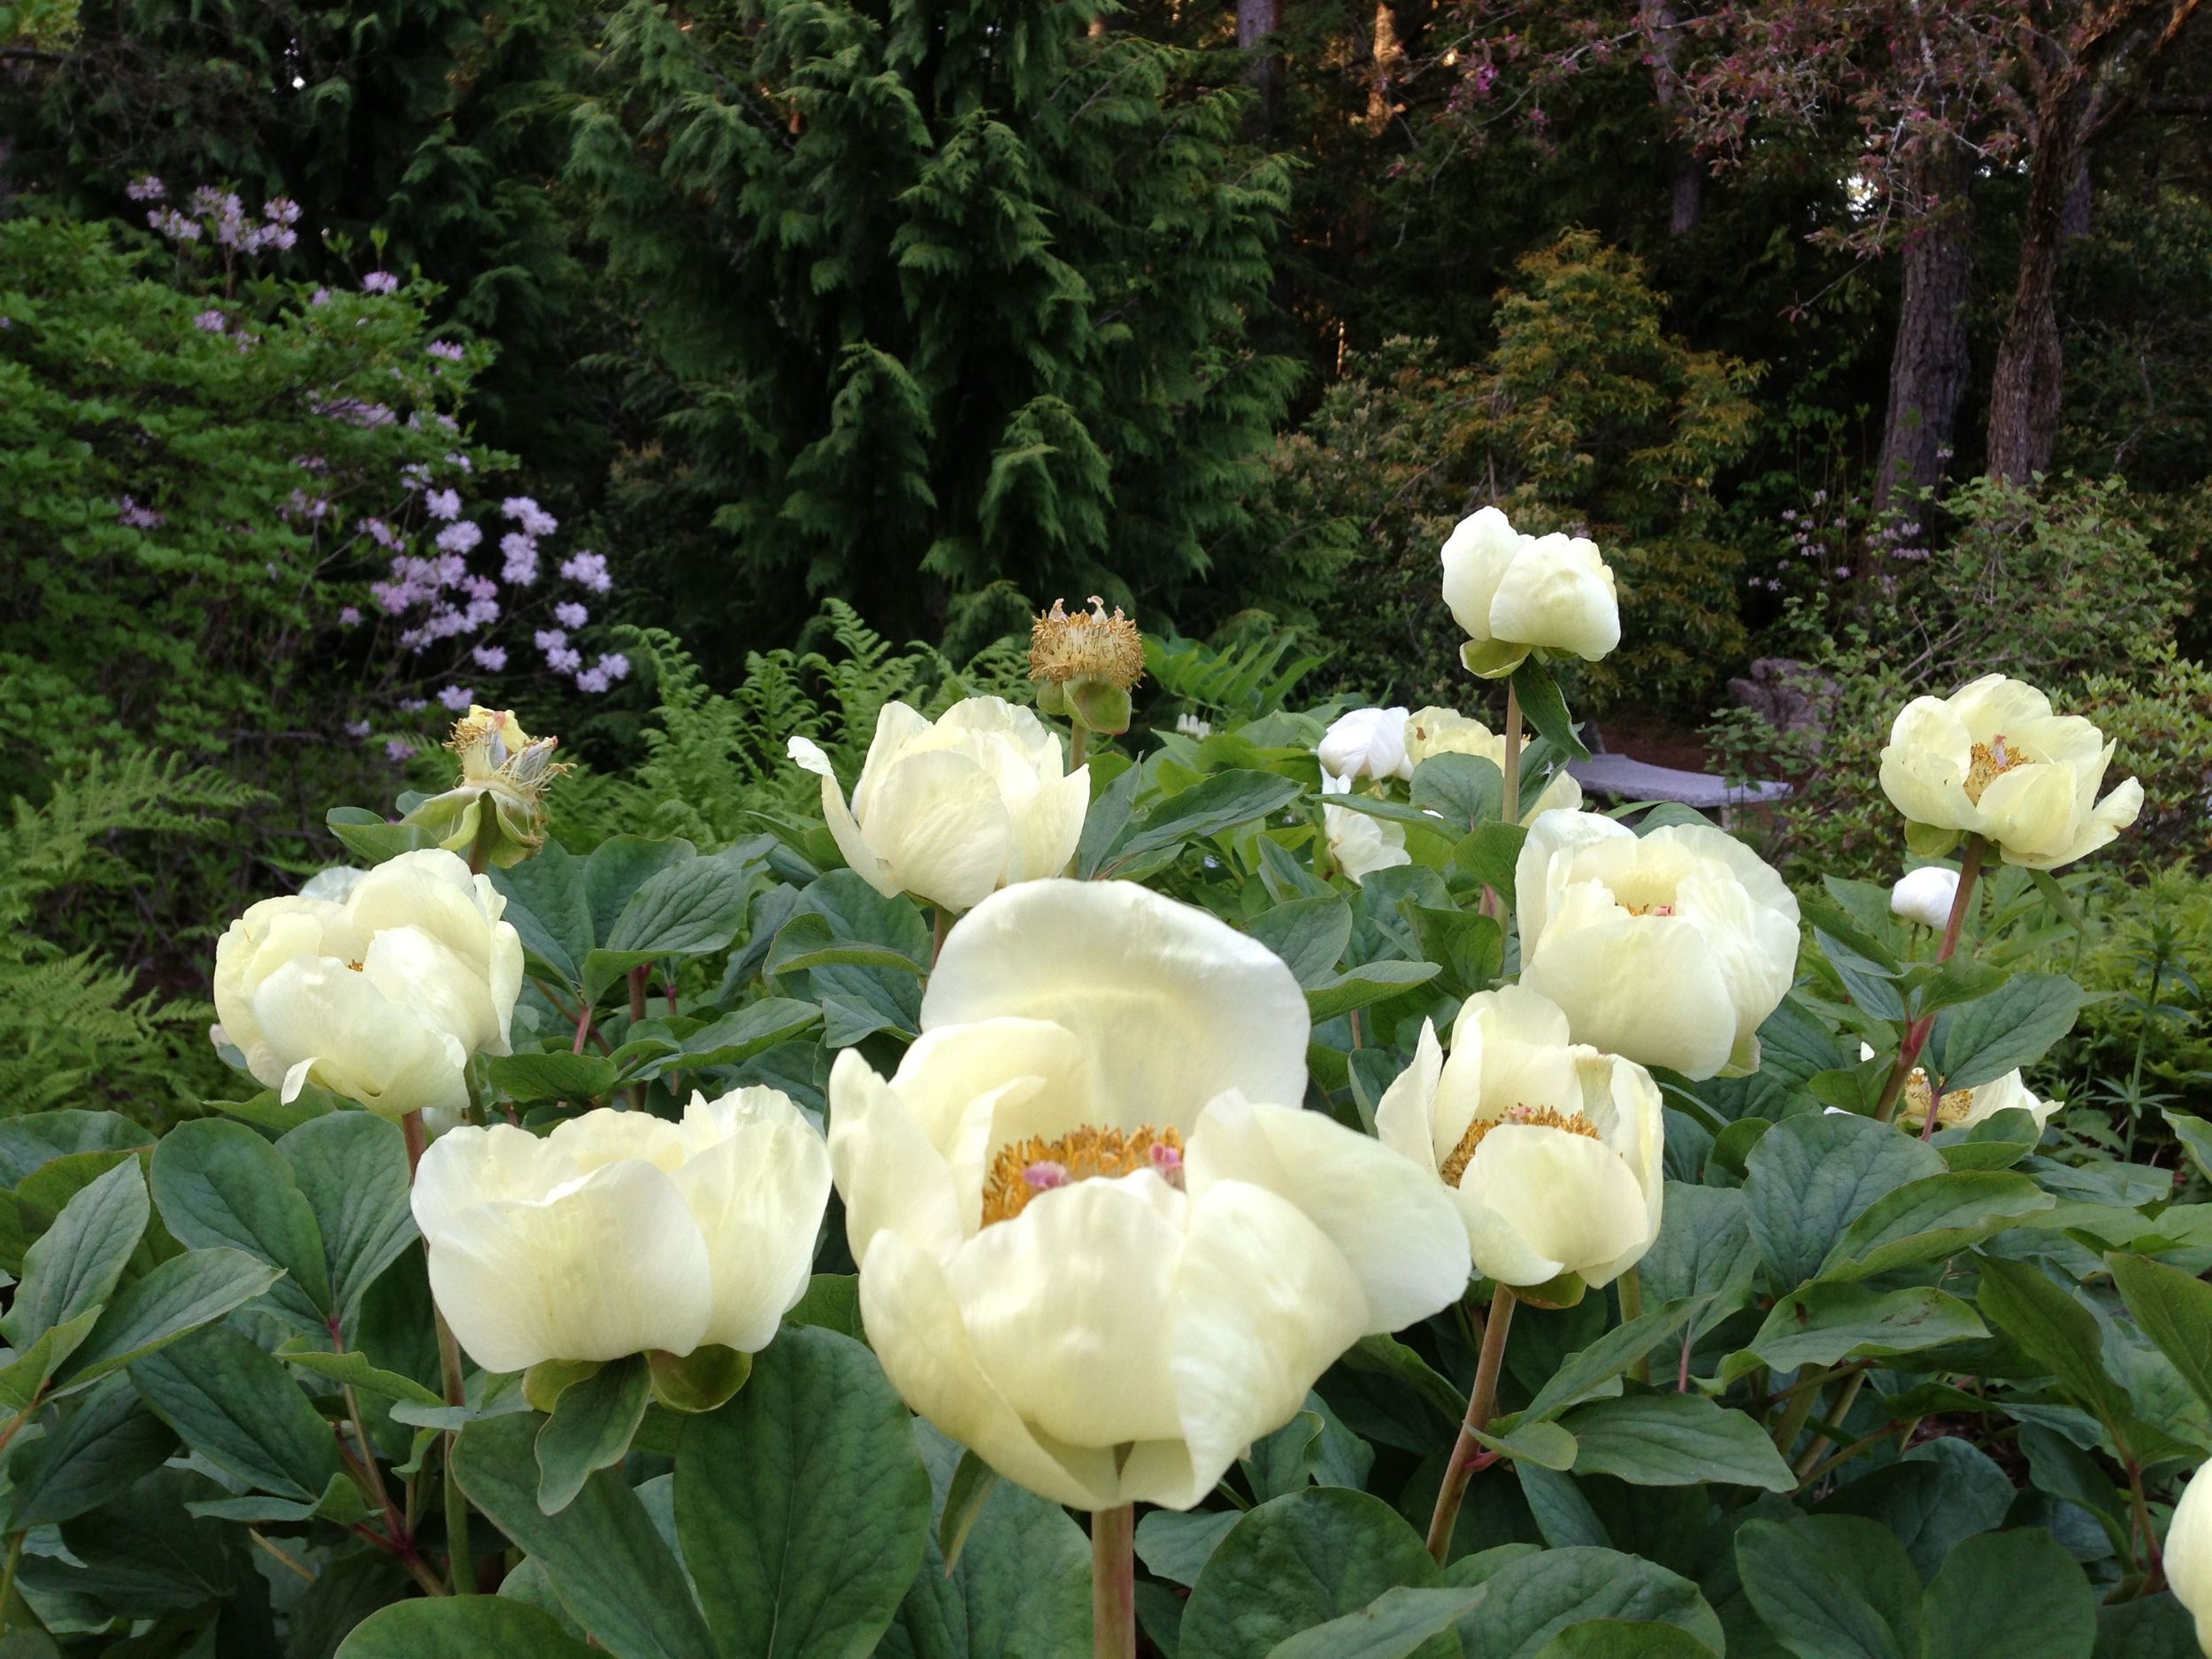 One parting shot from the Asticou garden, of peonies at their peak.